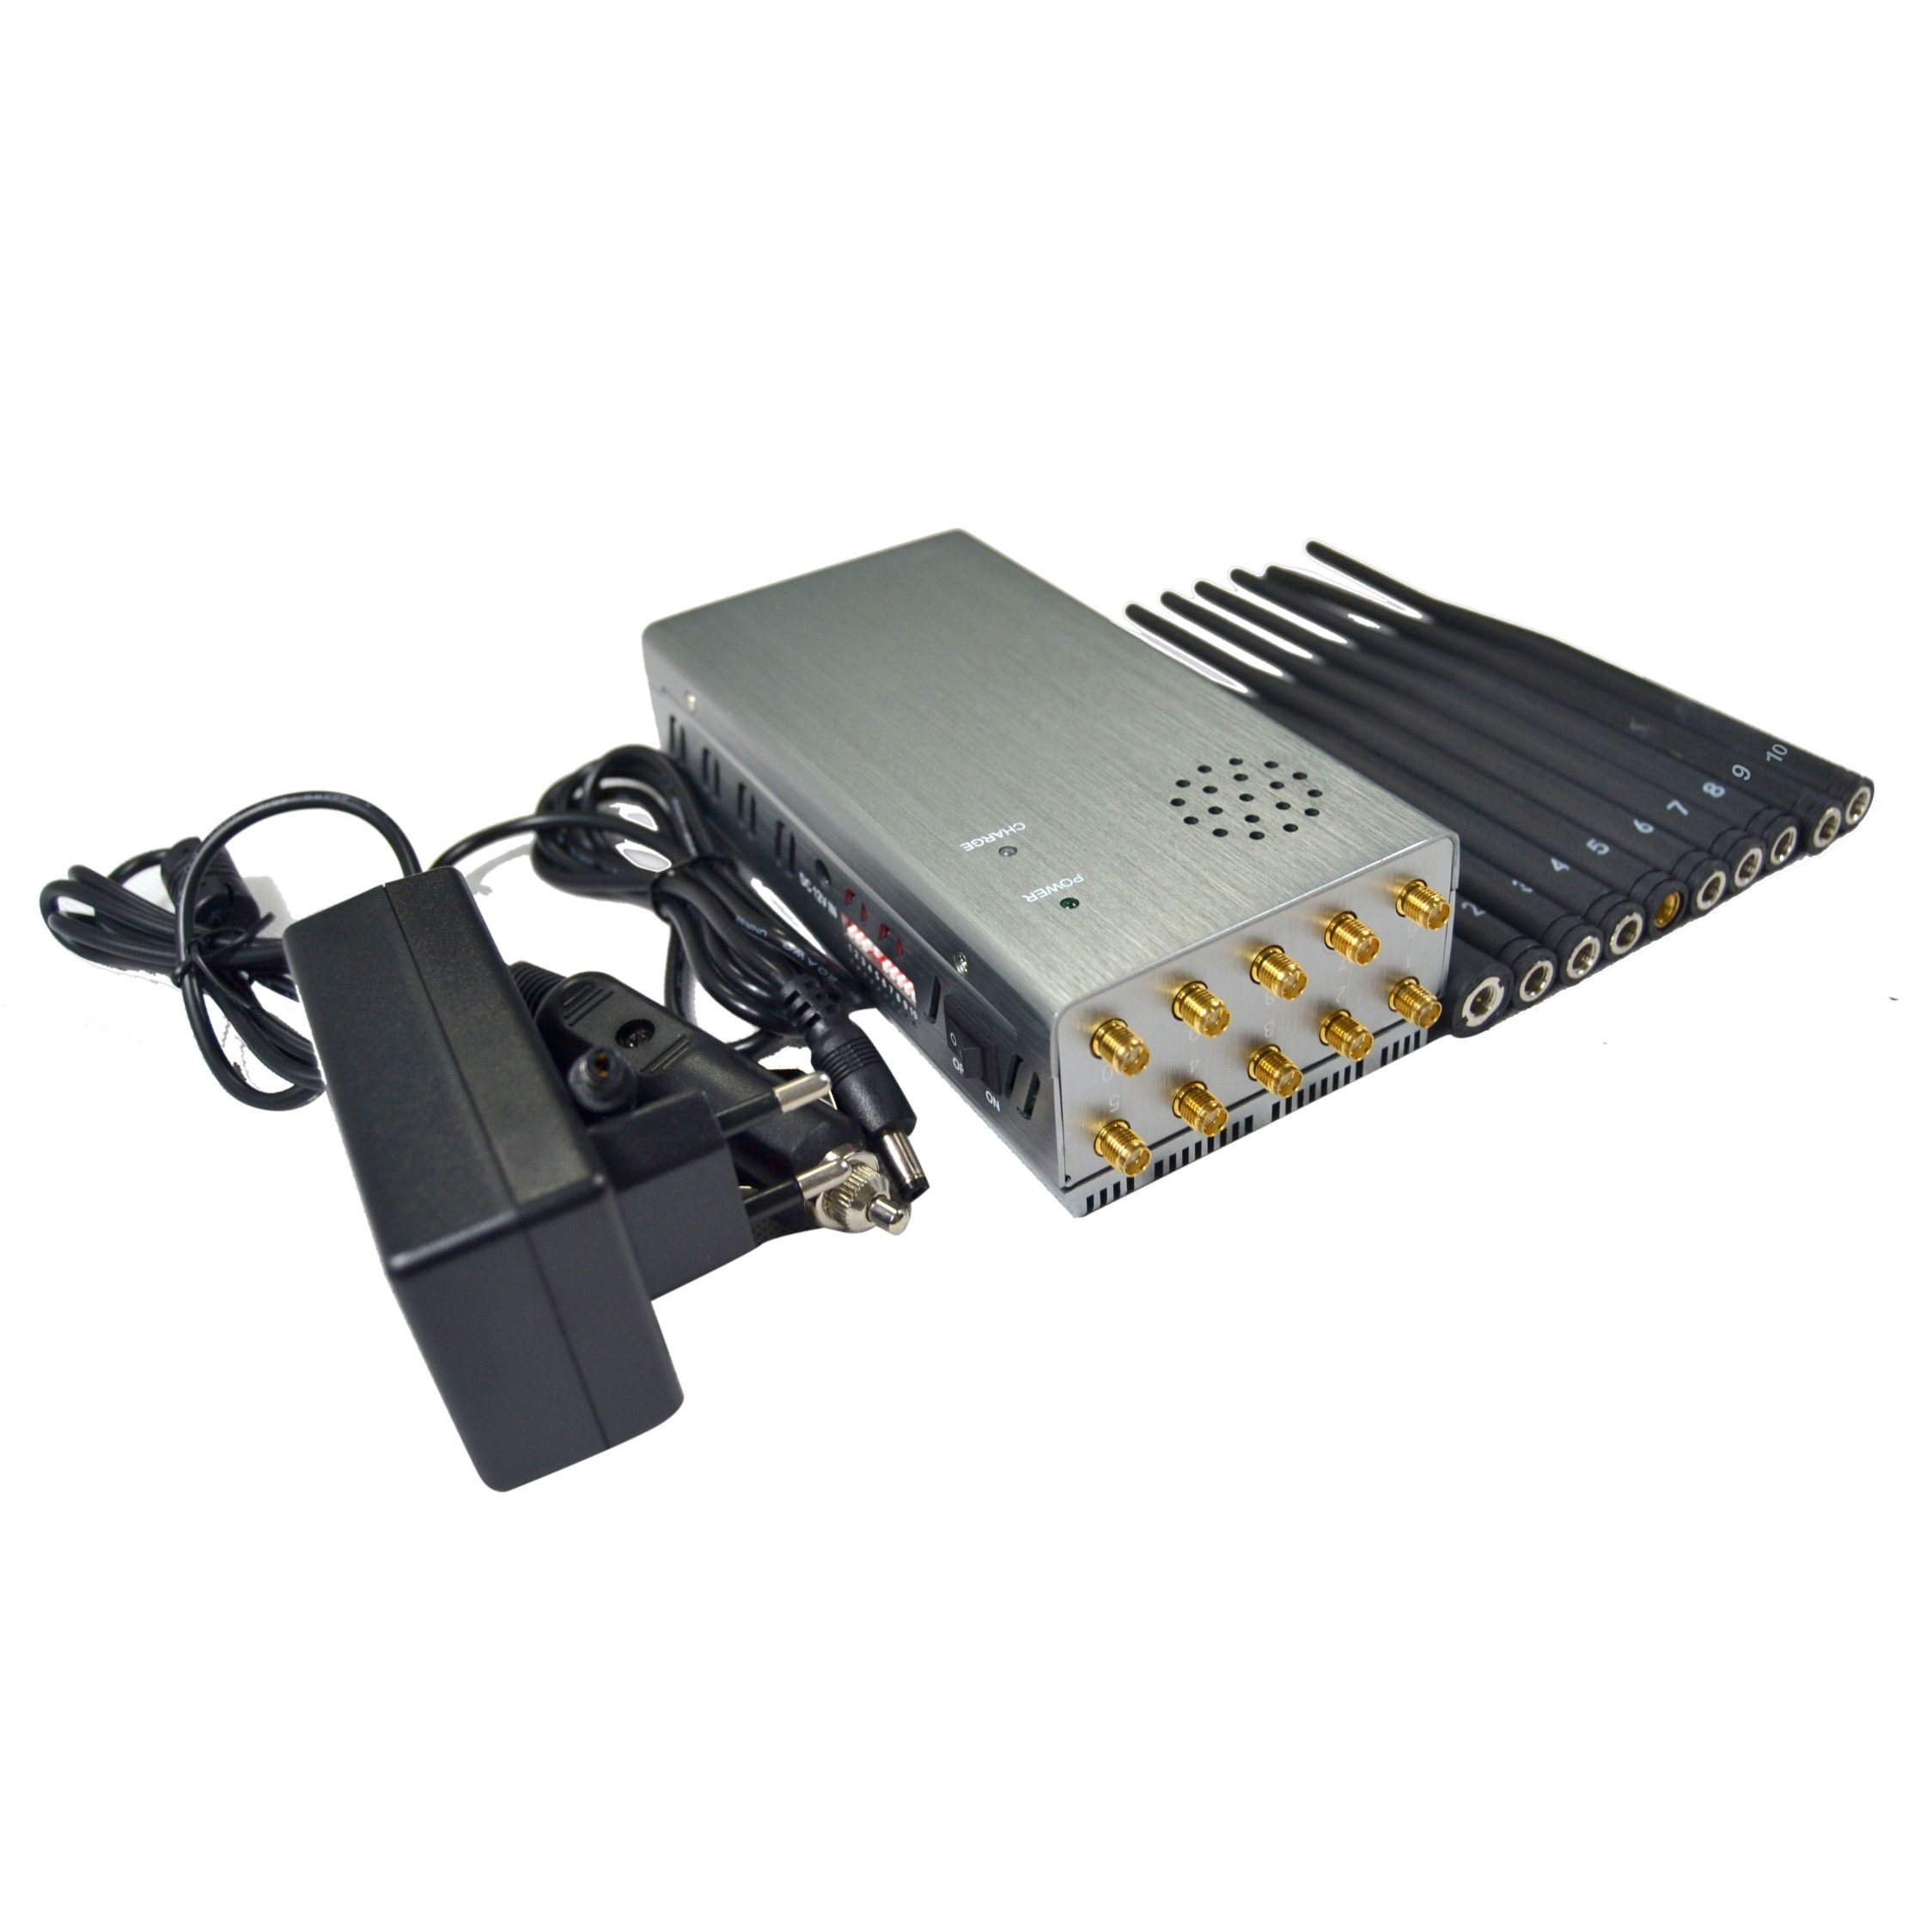 gps tracker signal jammer device | China Large Battery Volume Portable Jammers with 10 Antennas Car Using - China Mobile Phone Jammer, Full Band Signal Blockers